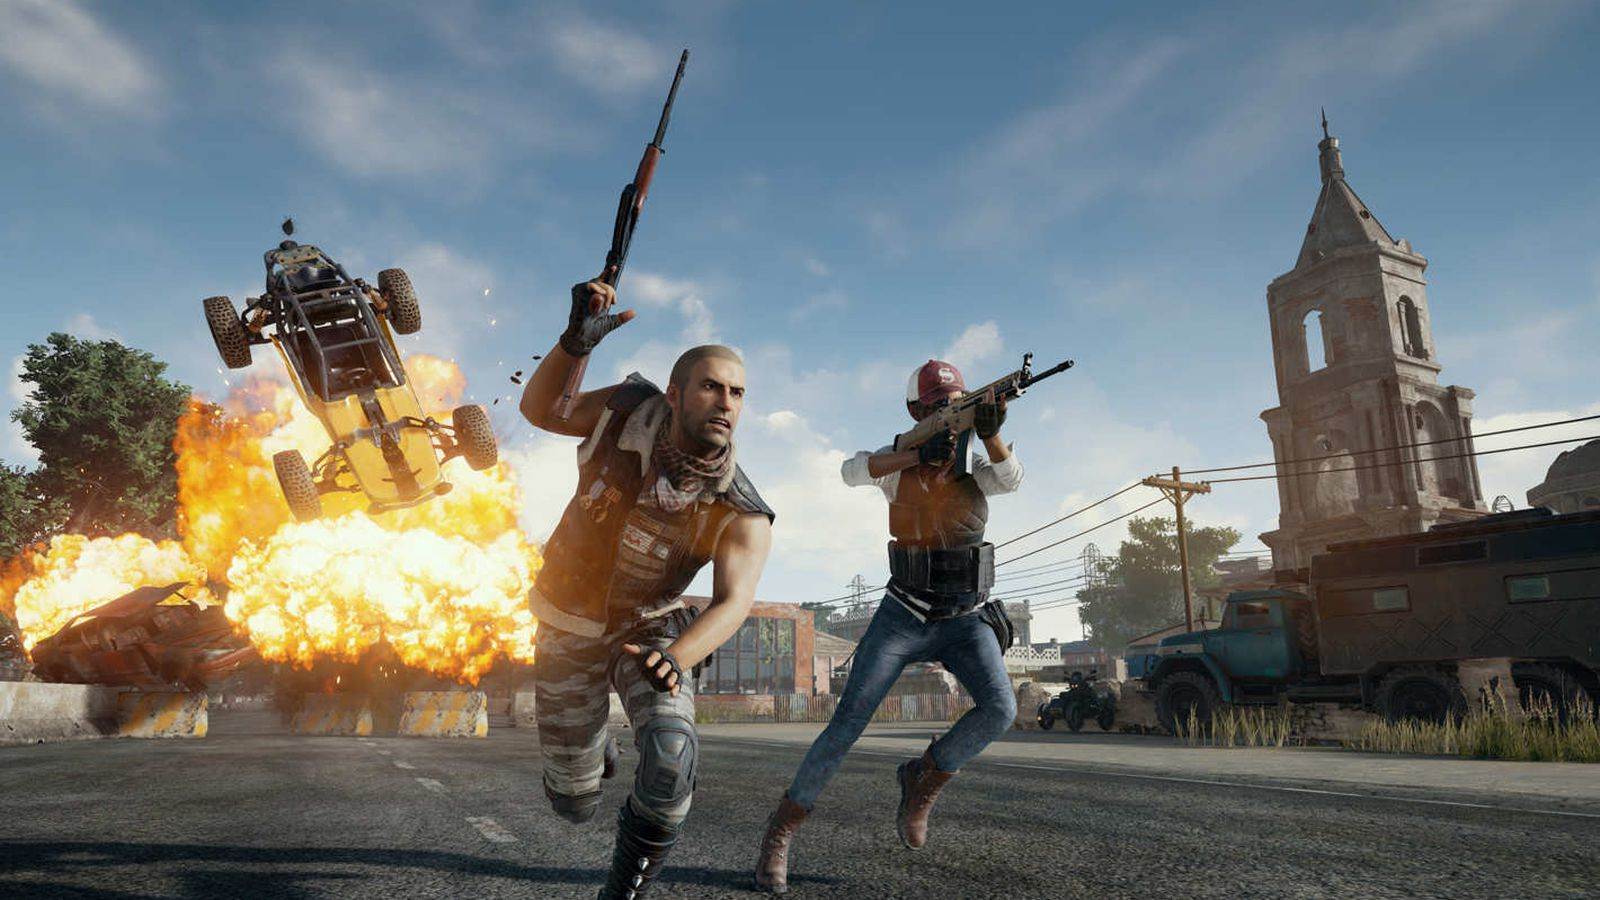 Pubg Ultra Hd Wallpapers: Why I Love PlayerUnknown's Battlegrounds Despite Hating